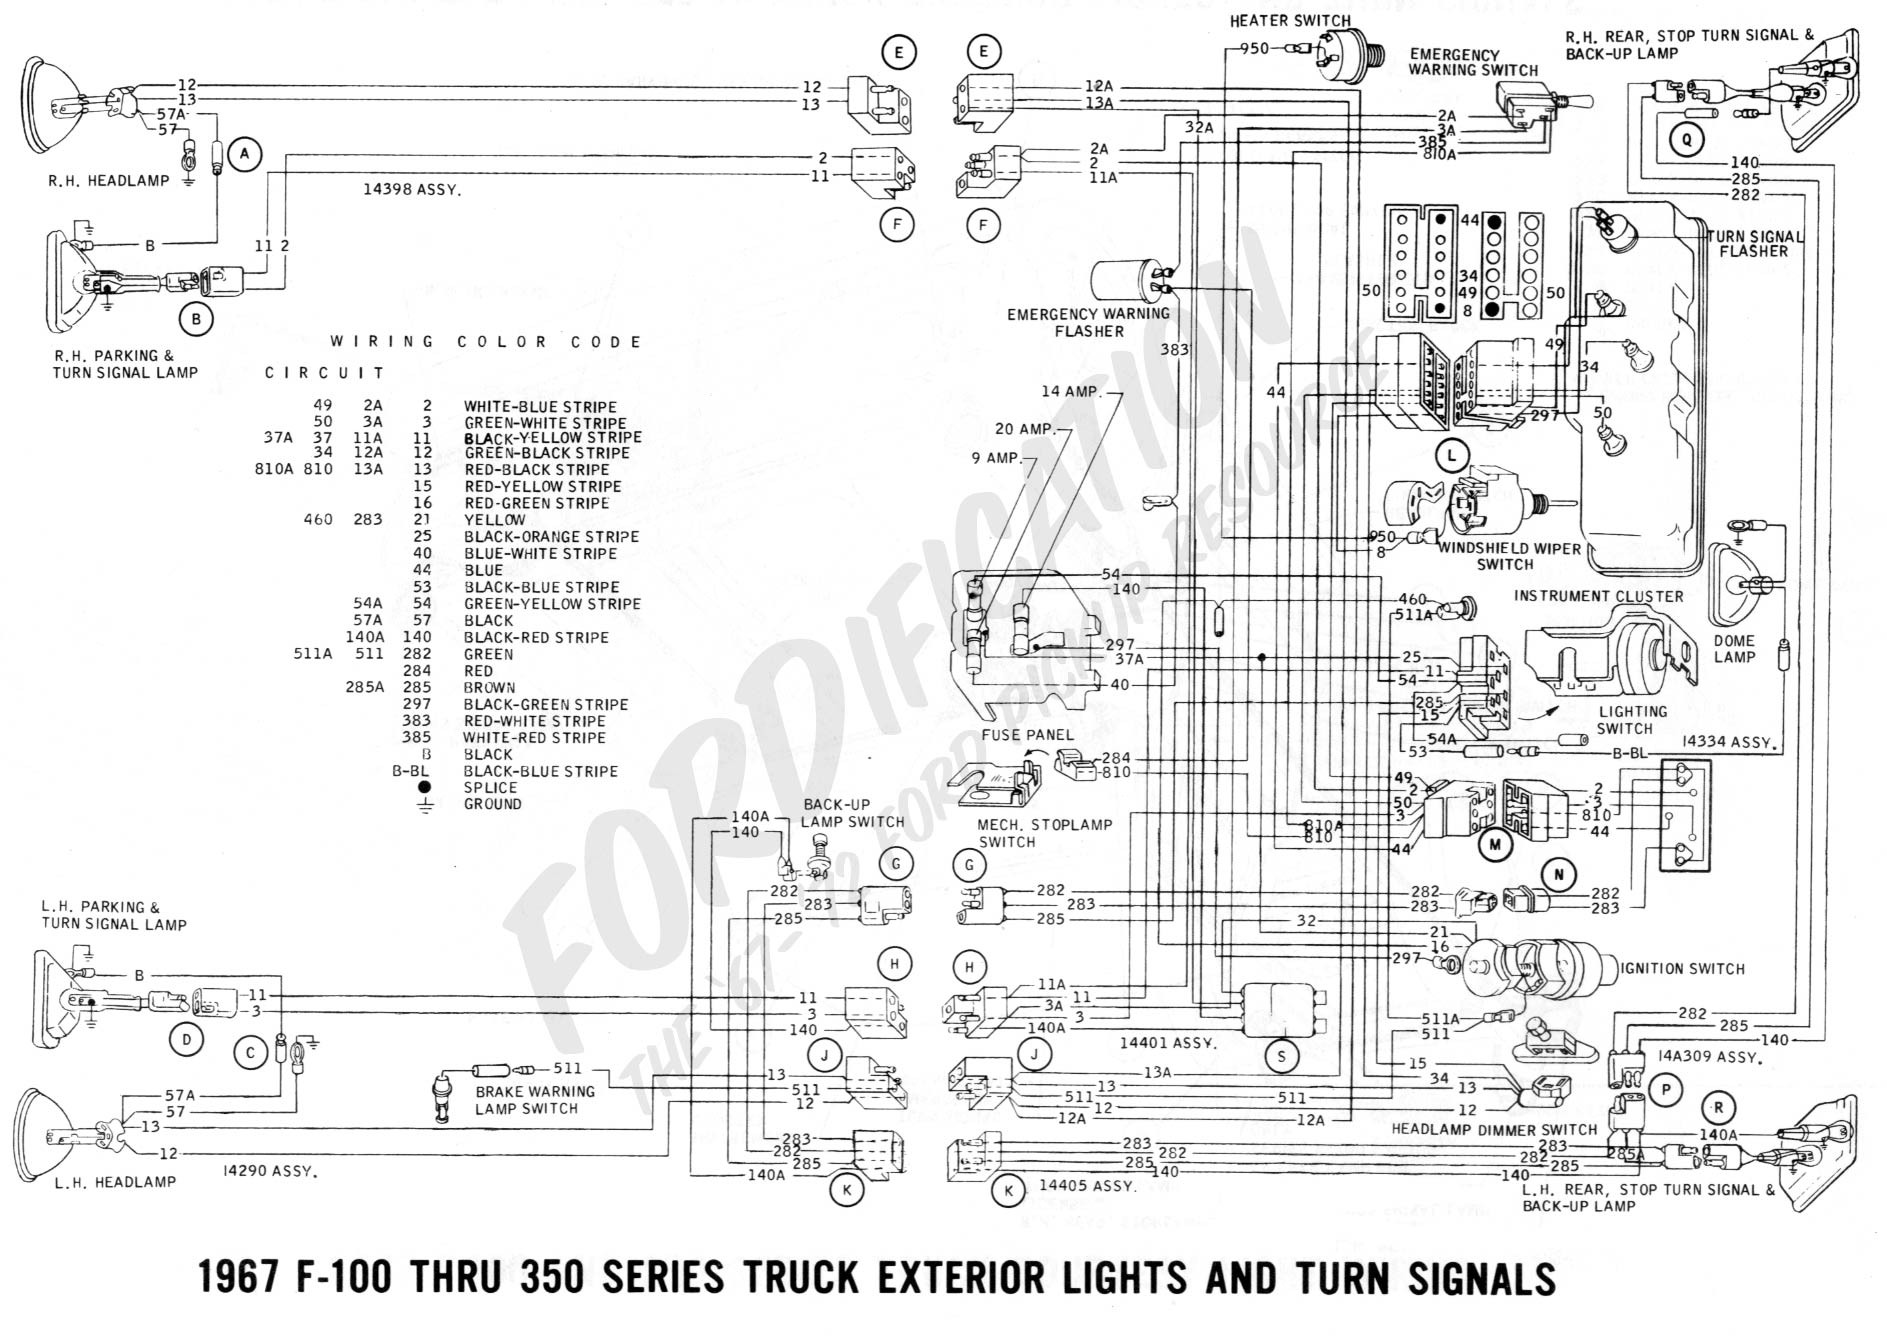 turn signal wire diagram ford truck technical drawings and schematics section h wiring of turn signal wire diagram 1972 ford pickup wiring schematic best wiring library